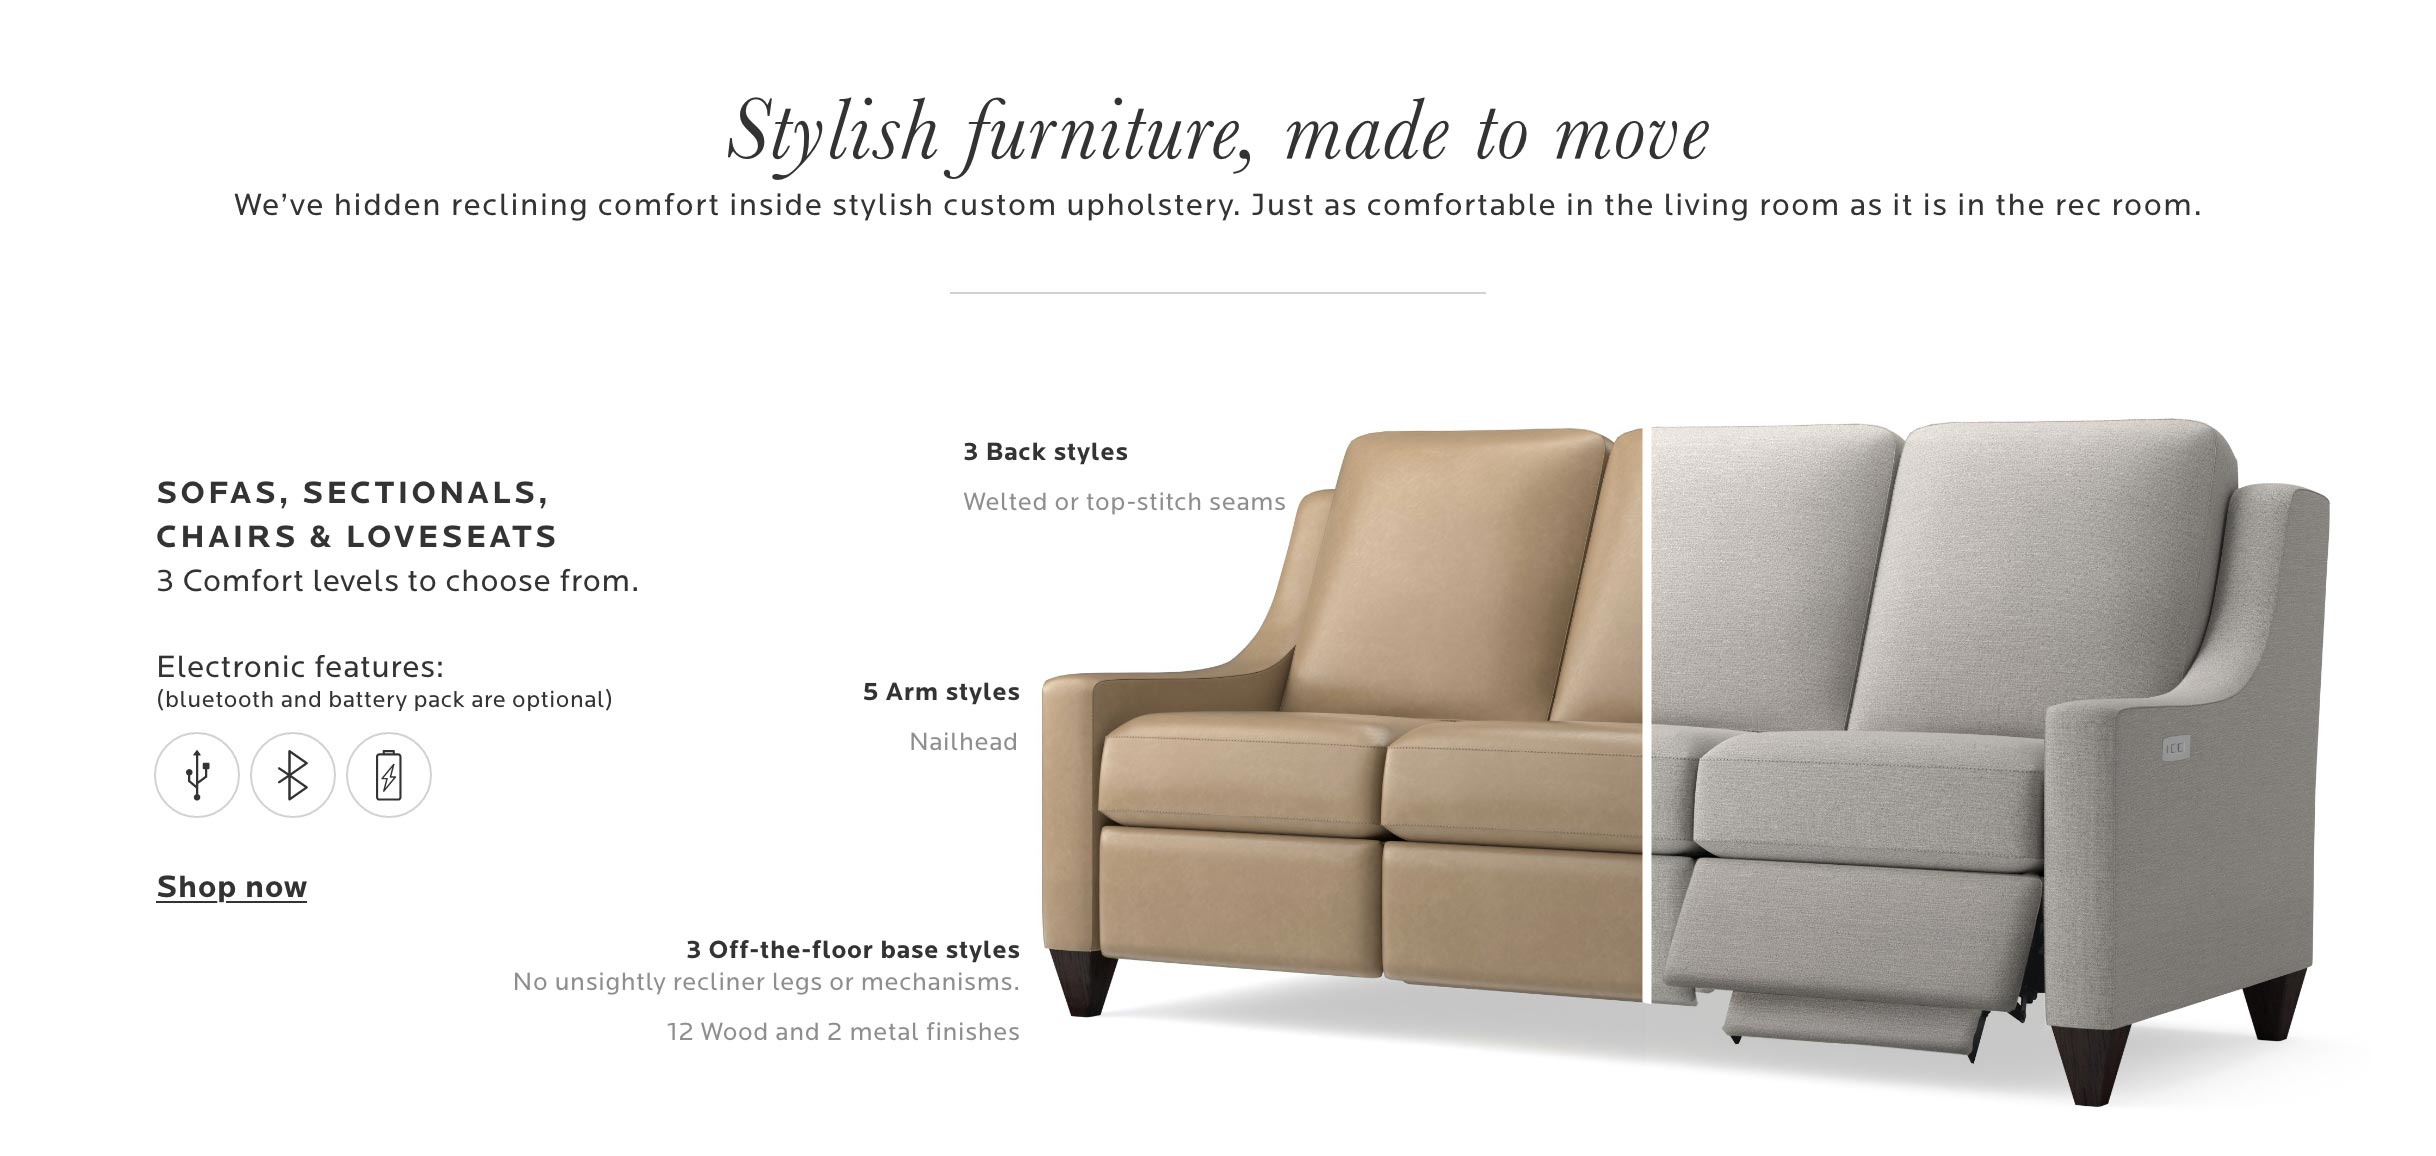 Stylish furniture, made to move. We've hidden reclining comfort inside stylish custom upholstery. Just as comfortable in the living room as it is in the rec room.  - Tablet